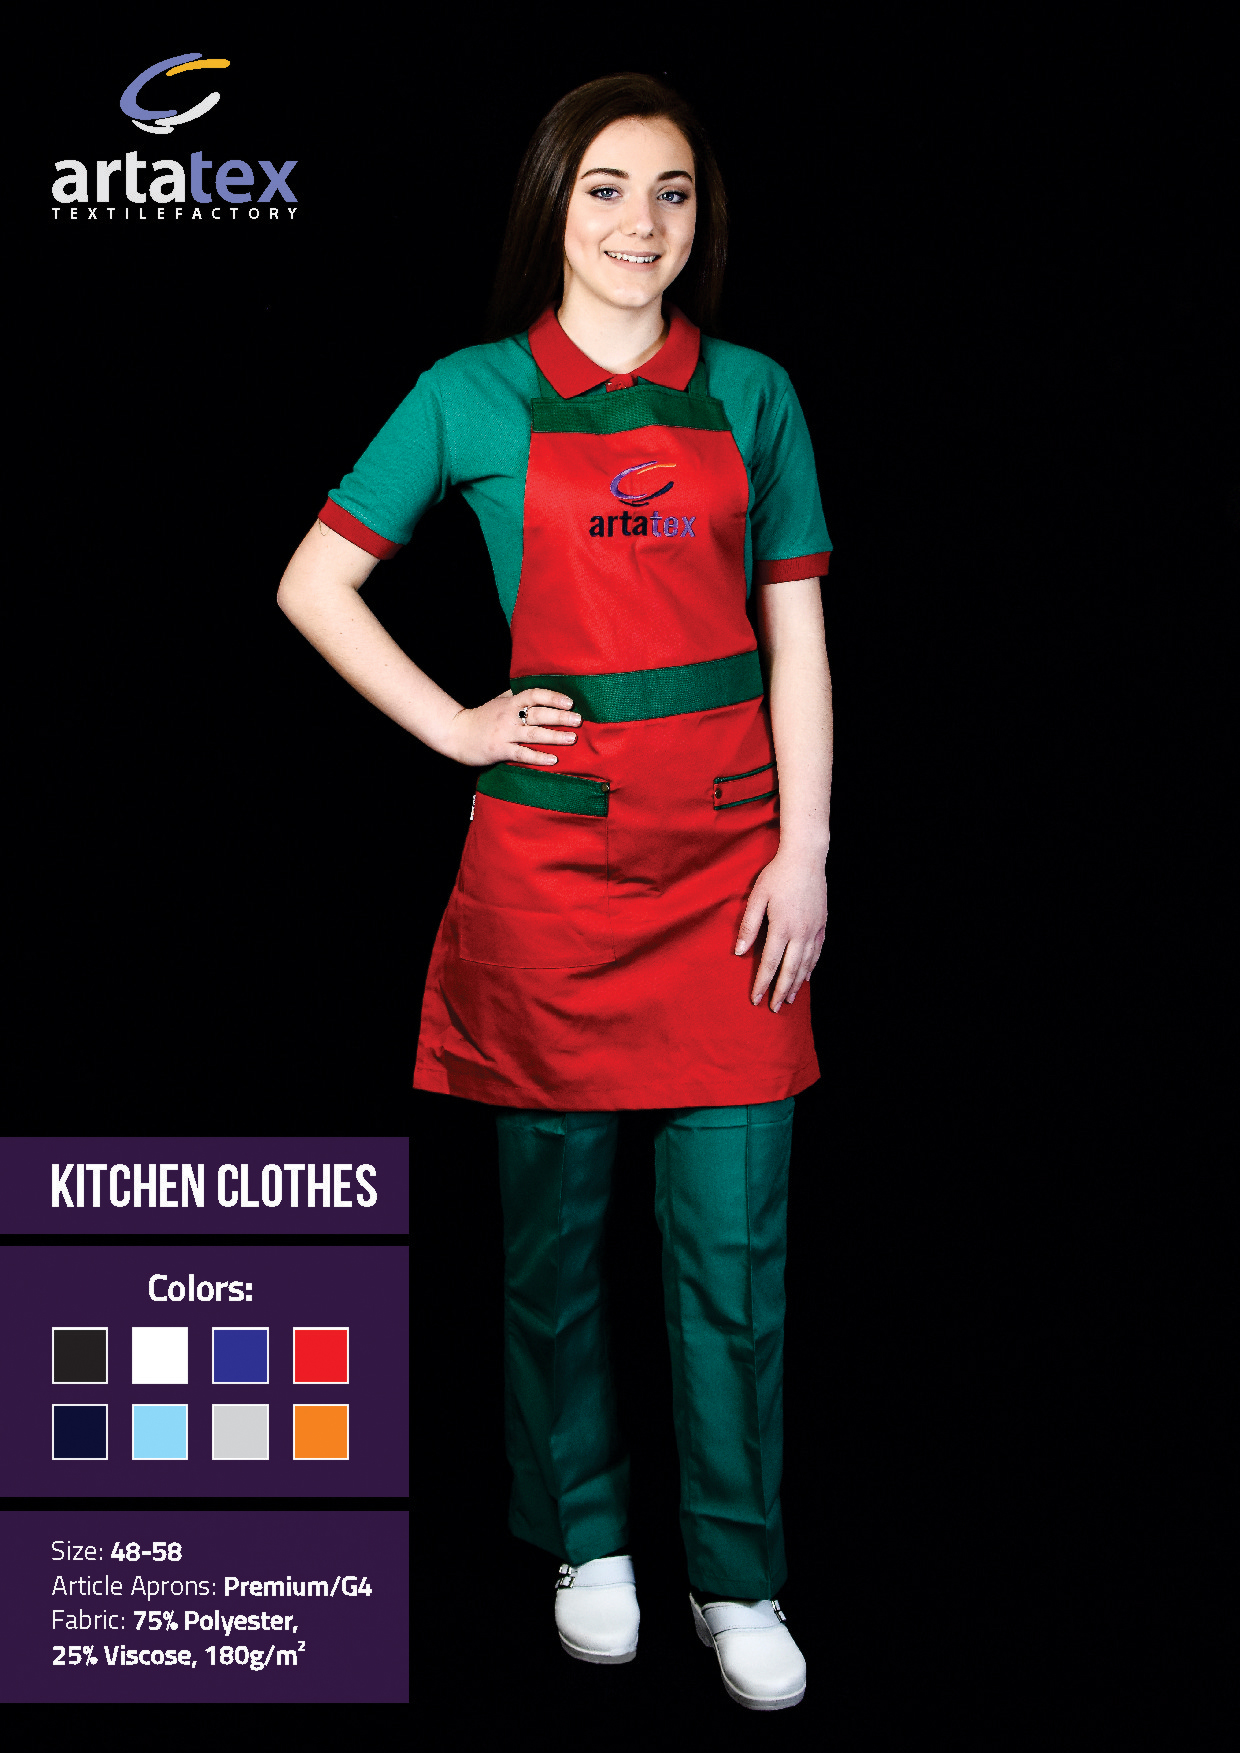 ArtaTex - Kitchen Clothes